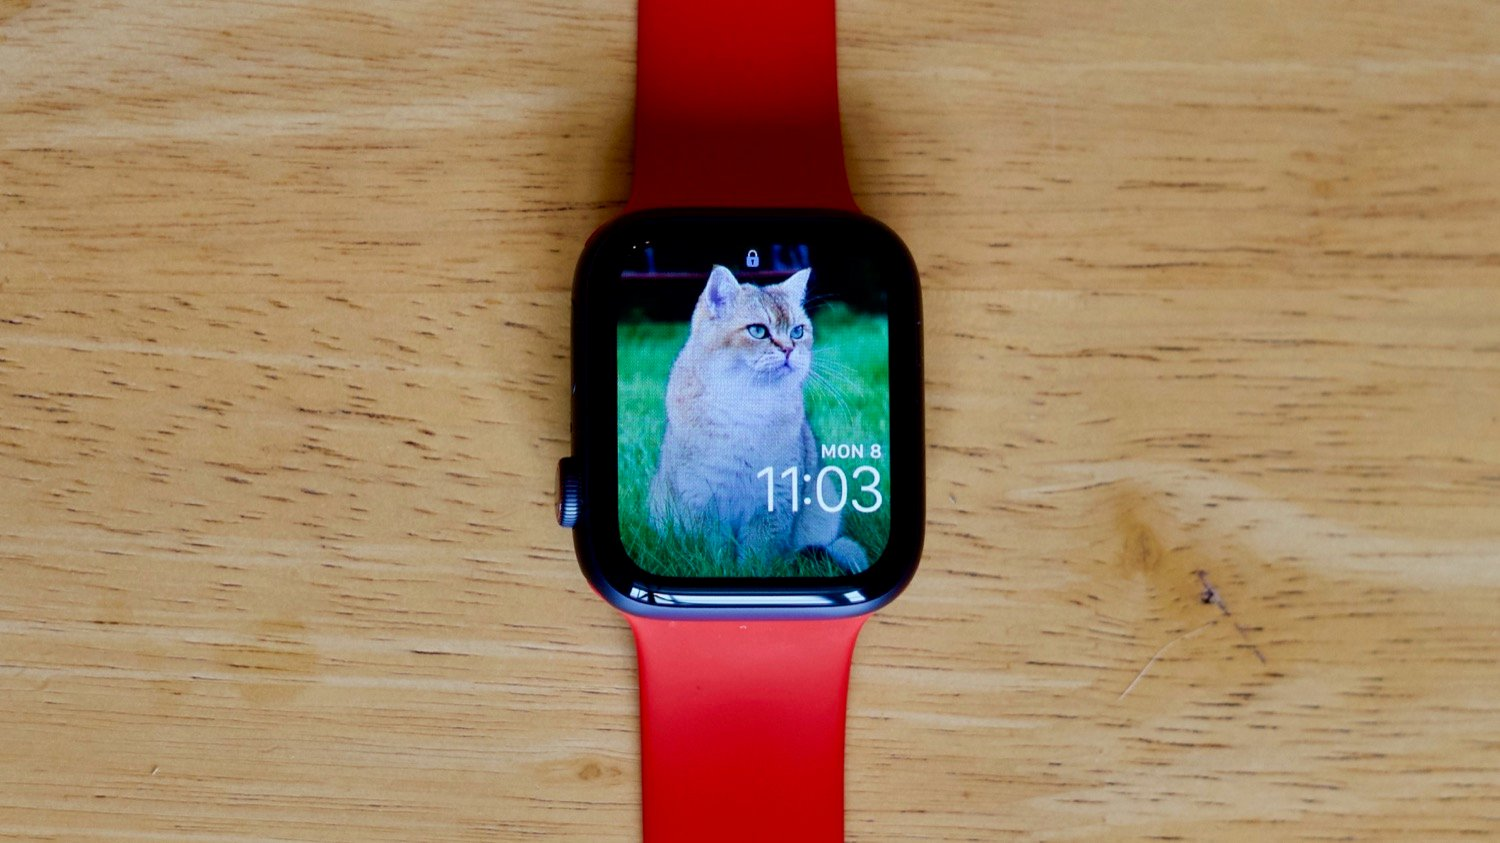 How To Sync View And Use Photos On The Apple Watch The